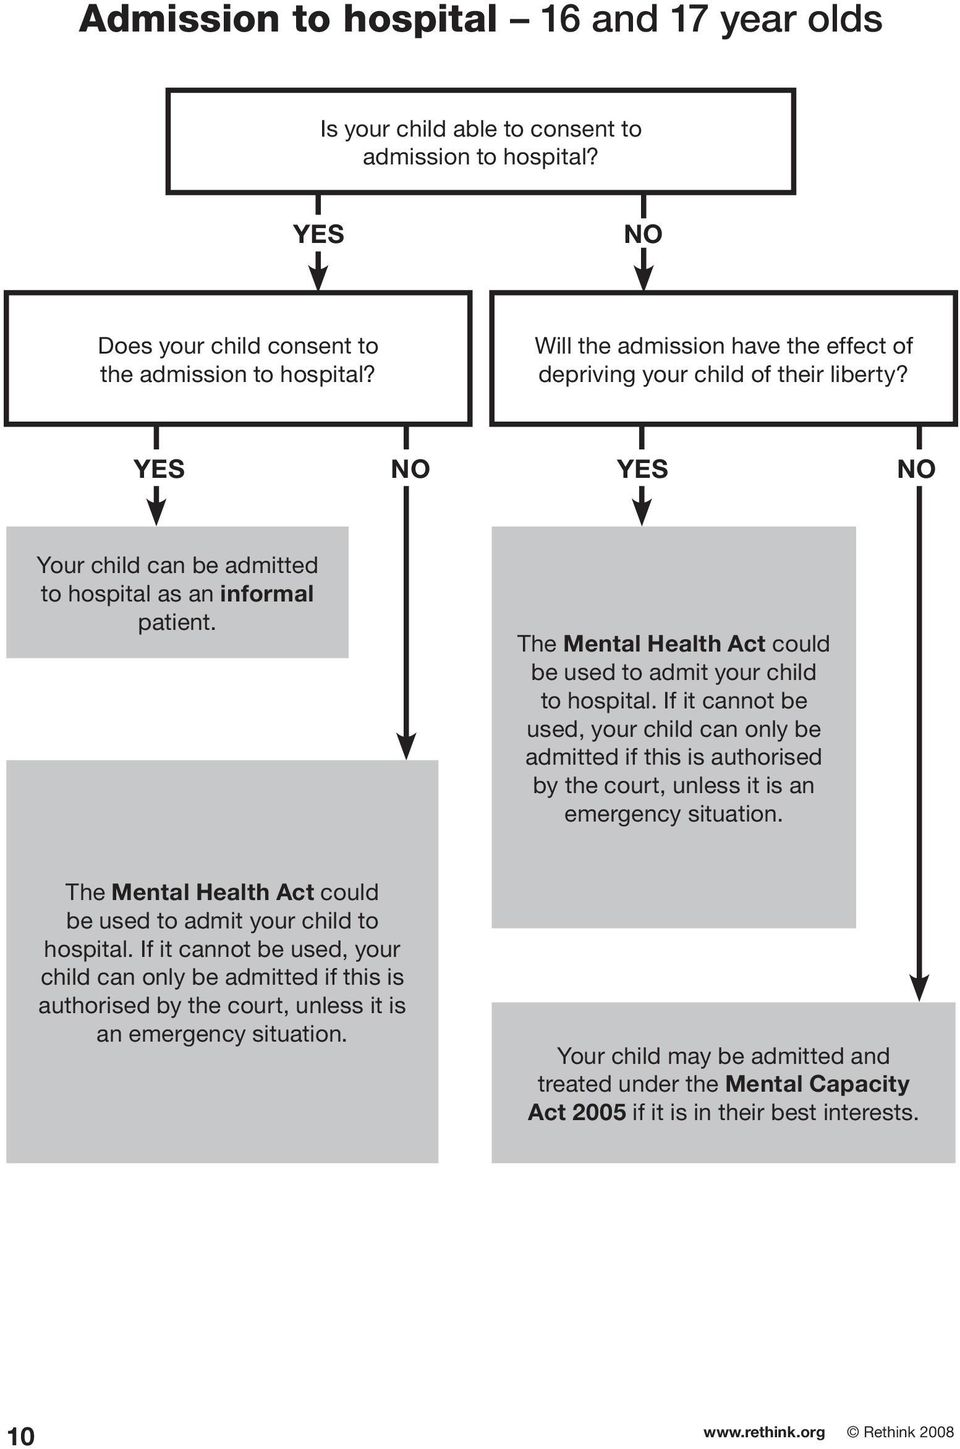 The Mental Health Act could be used to admit your child to hospital. If it cannot be used, your child can only be admitted if this is authorised by the court, unless it is an emergency situation.